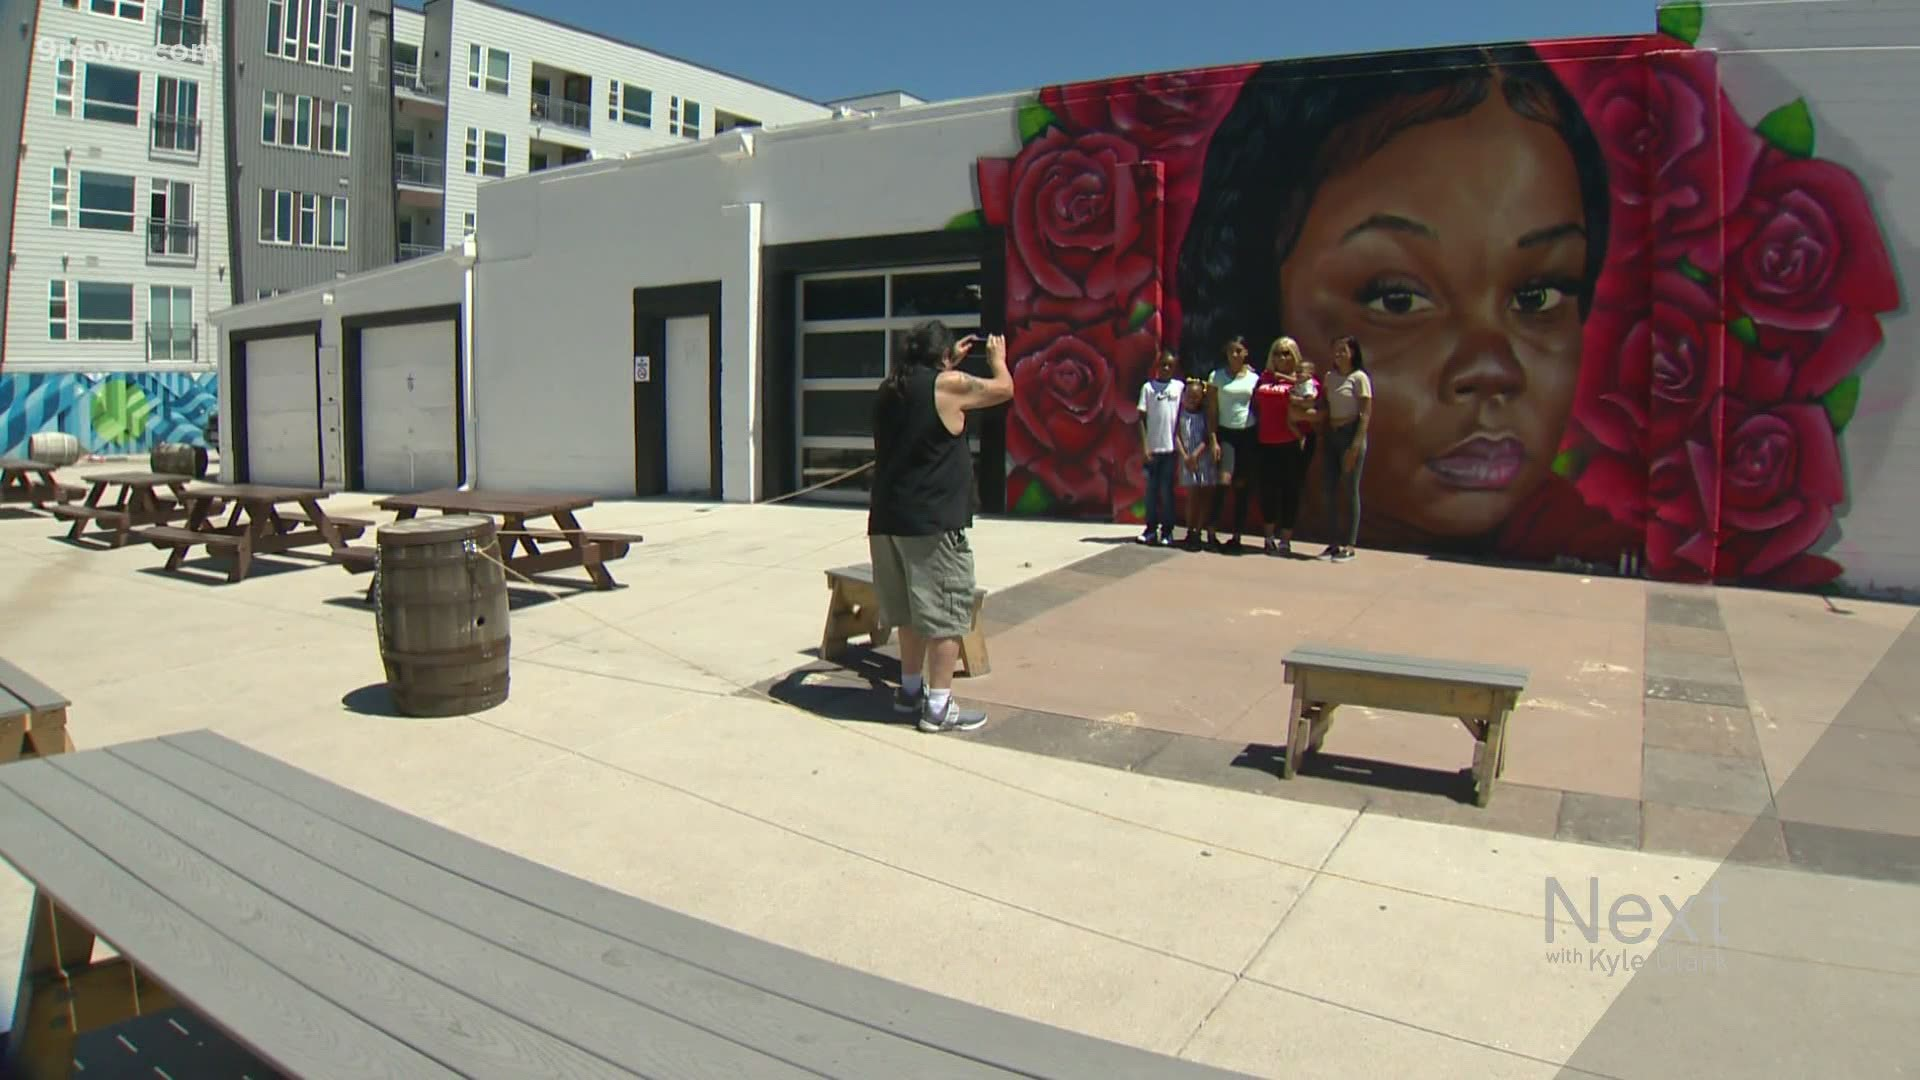 Artists Paint Murals Featuring George Floyd Breonna Taylor 9news Com